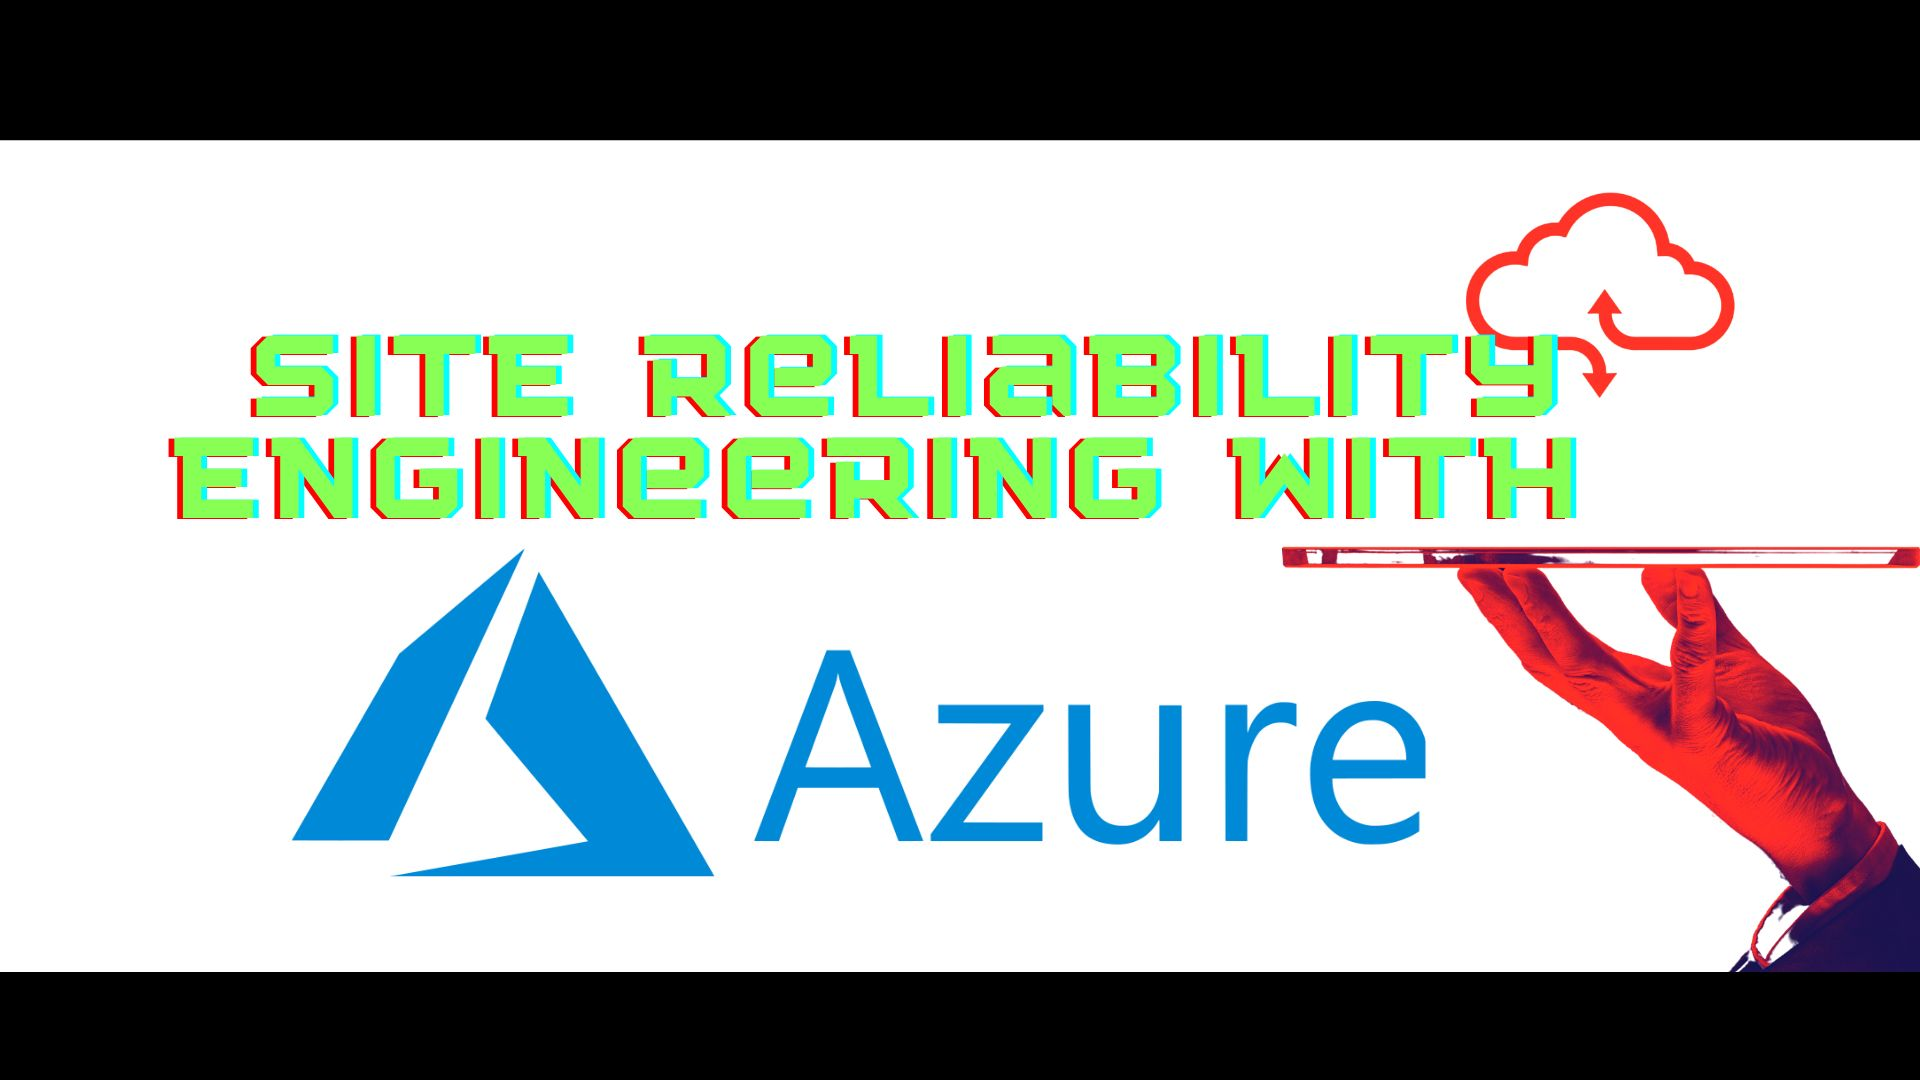 /site-reliability-engineering-with-azure-qd2337y2 feature image